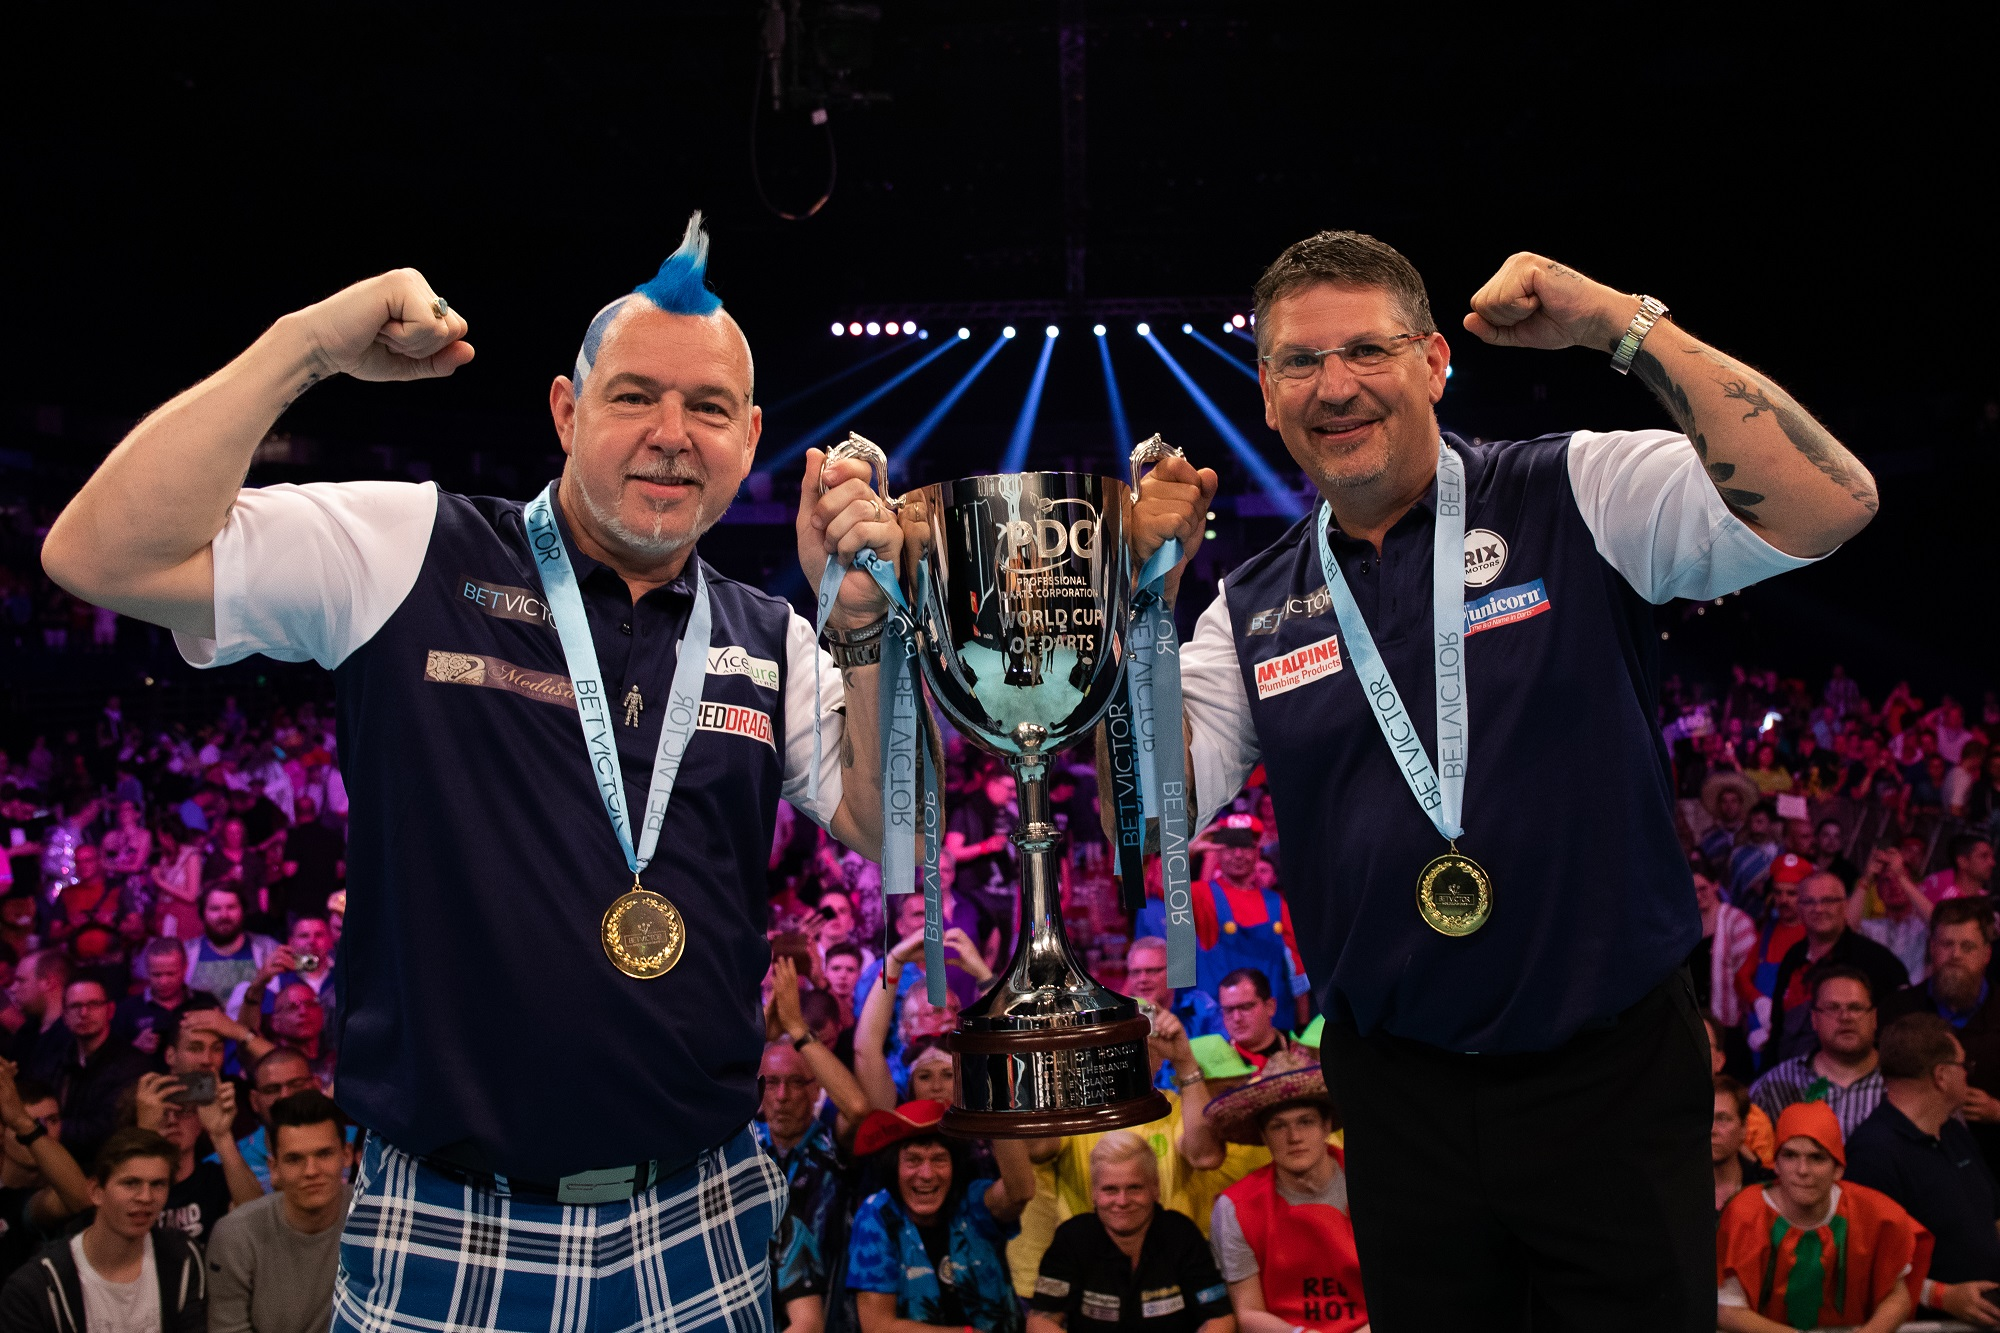 PDC World Cup of Darts Betting Odds